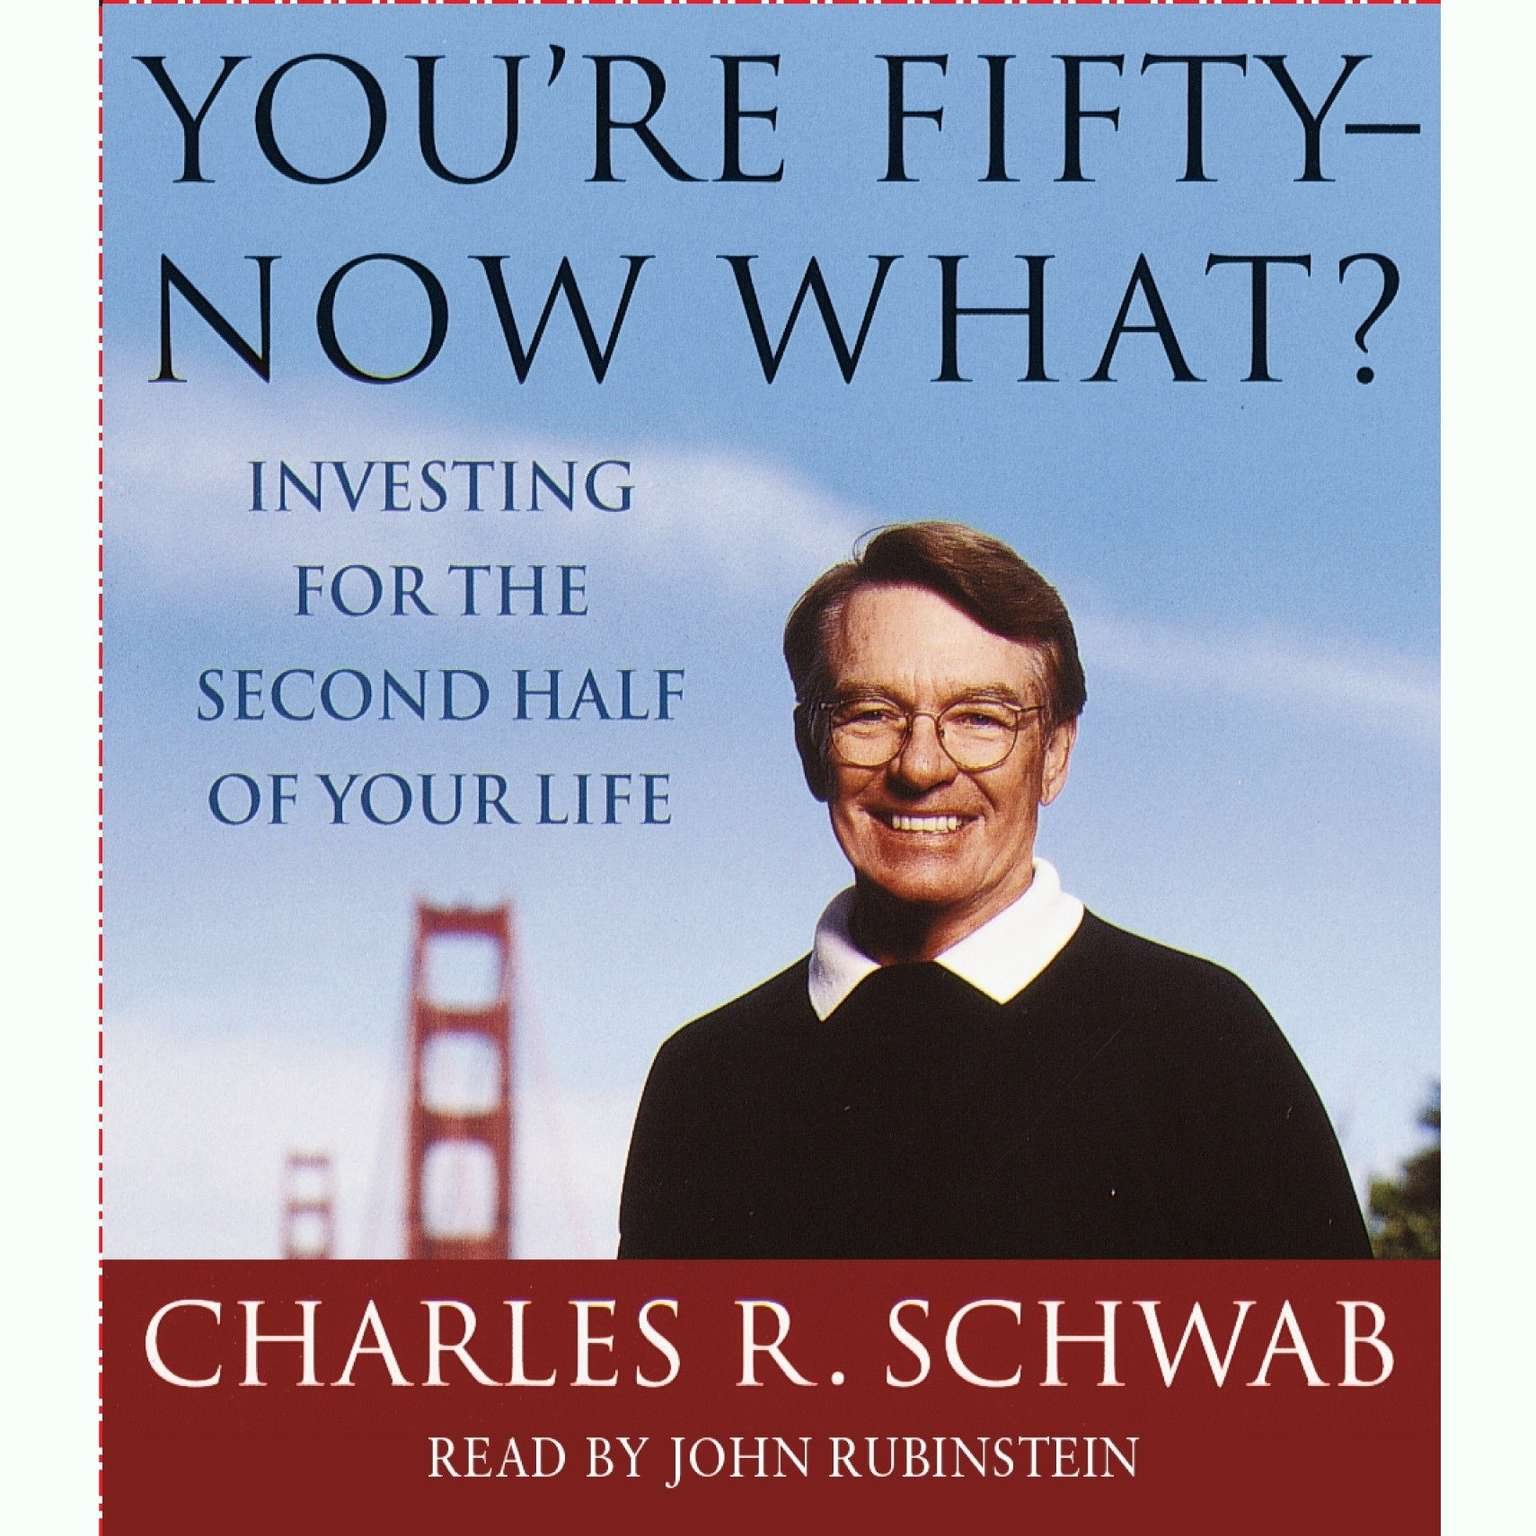 Printable You're Fifty--Now What: Investing for the Second Half of Your Life Audiobook Cover Art